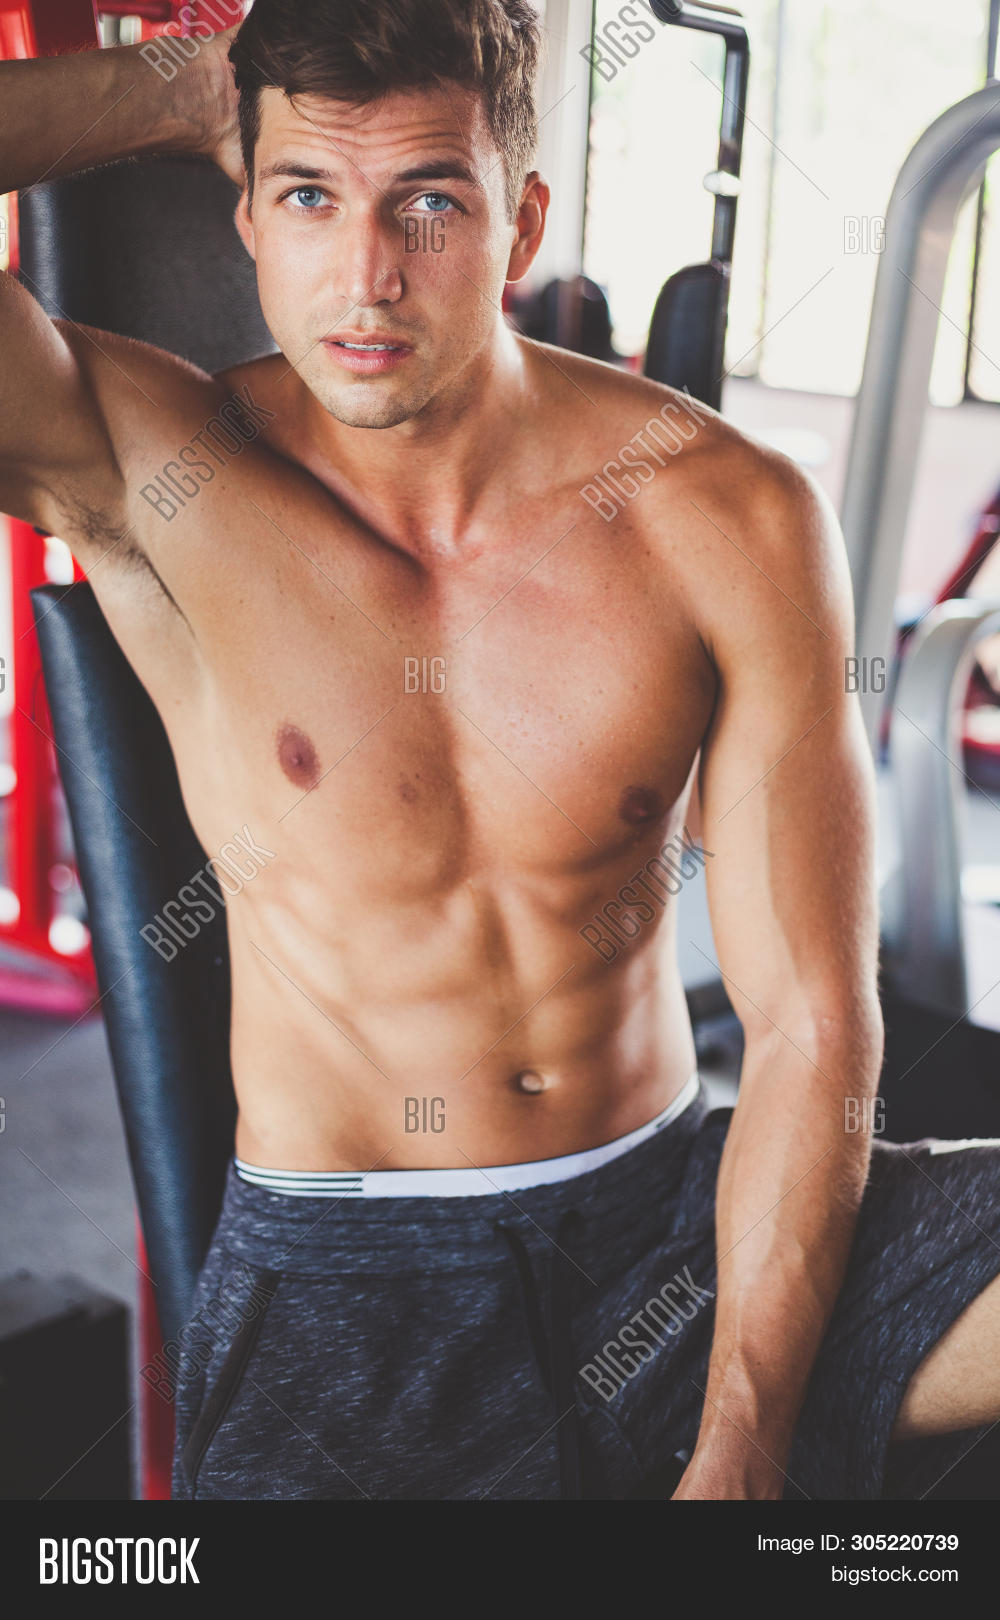 Nacked men with abs